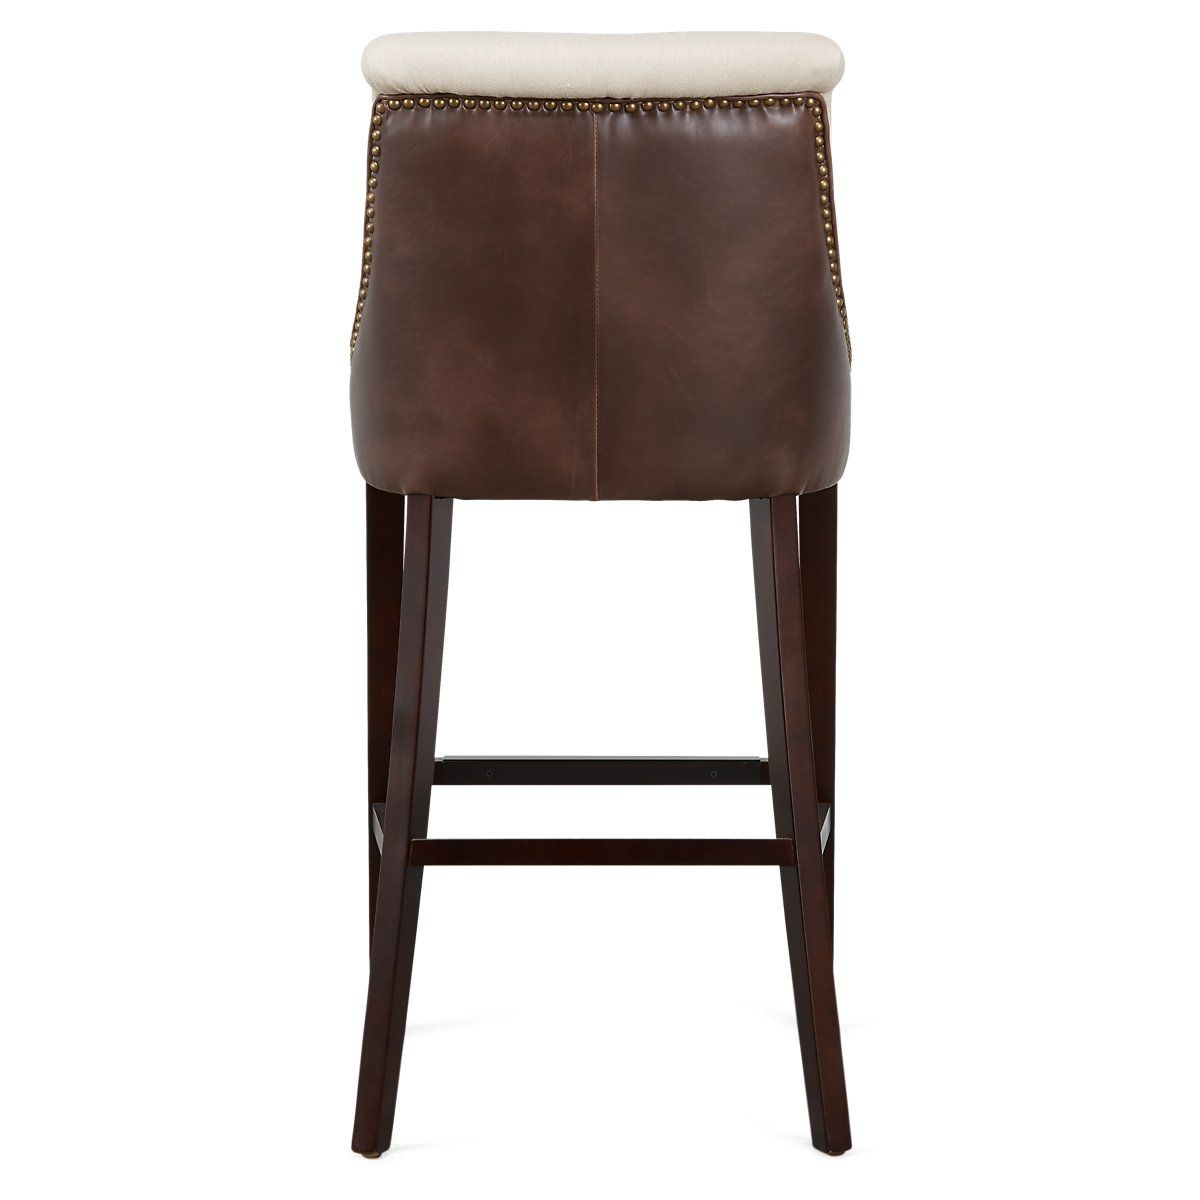 Awesome Brynn Light Beige Microfiber 30 Barstool Bar Stools Unemploymentrelief Wooden Chair Designs For Living Room Unemploymentrelieforg